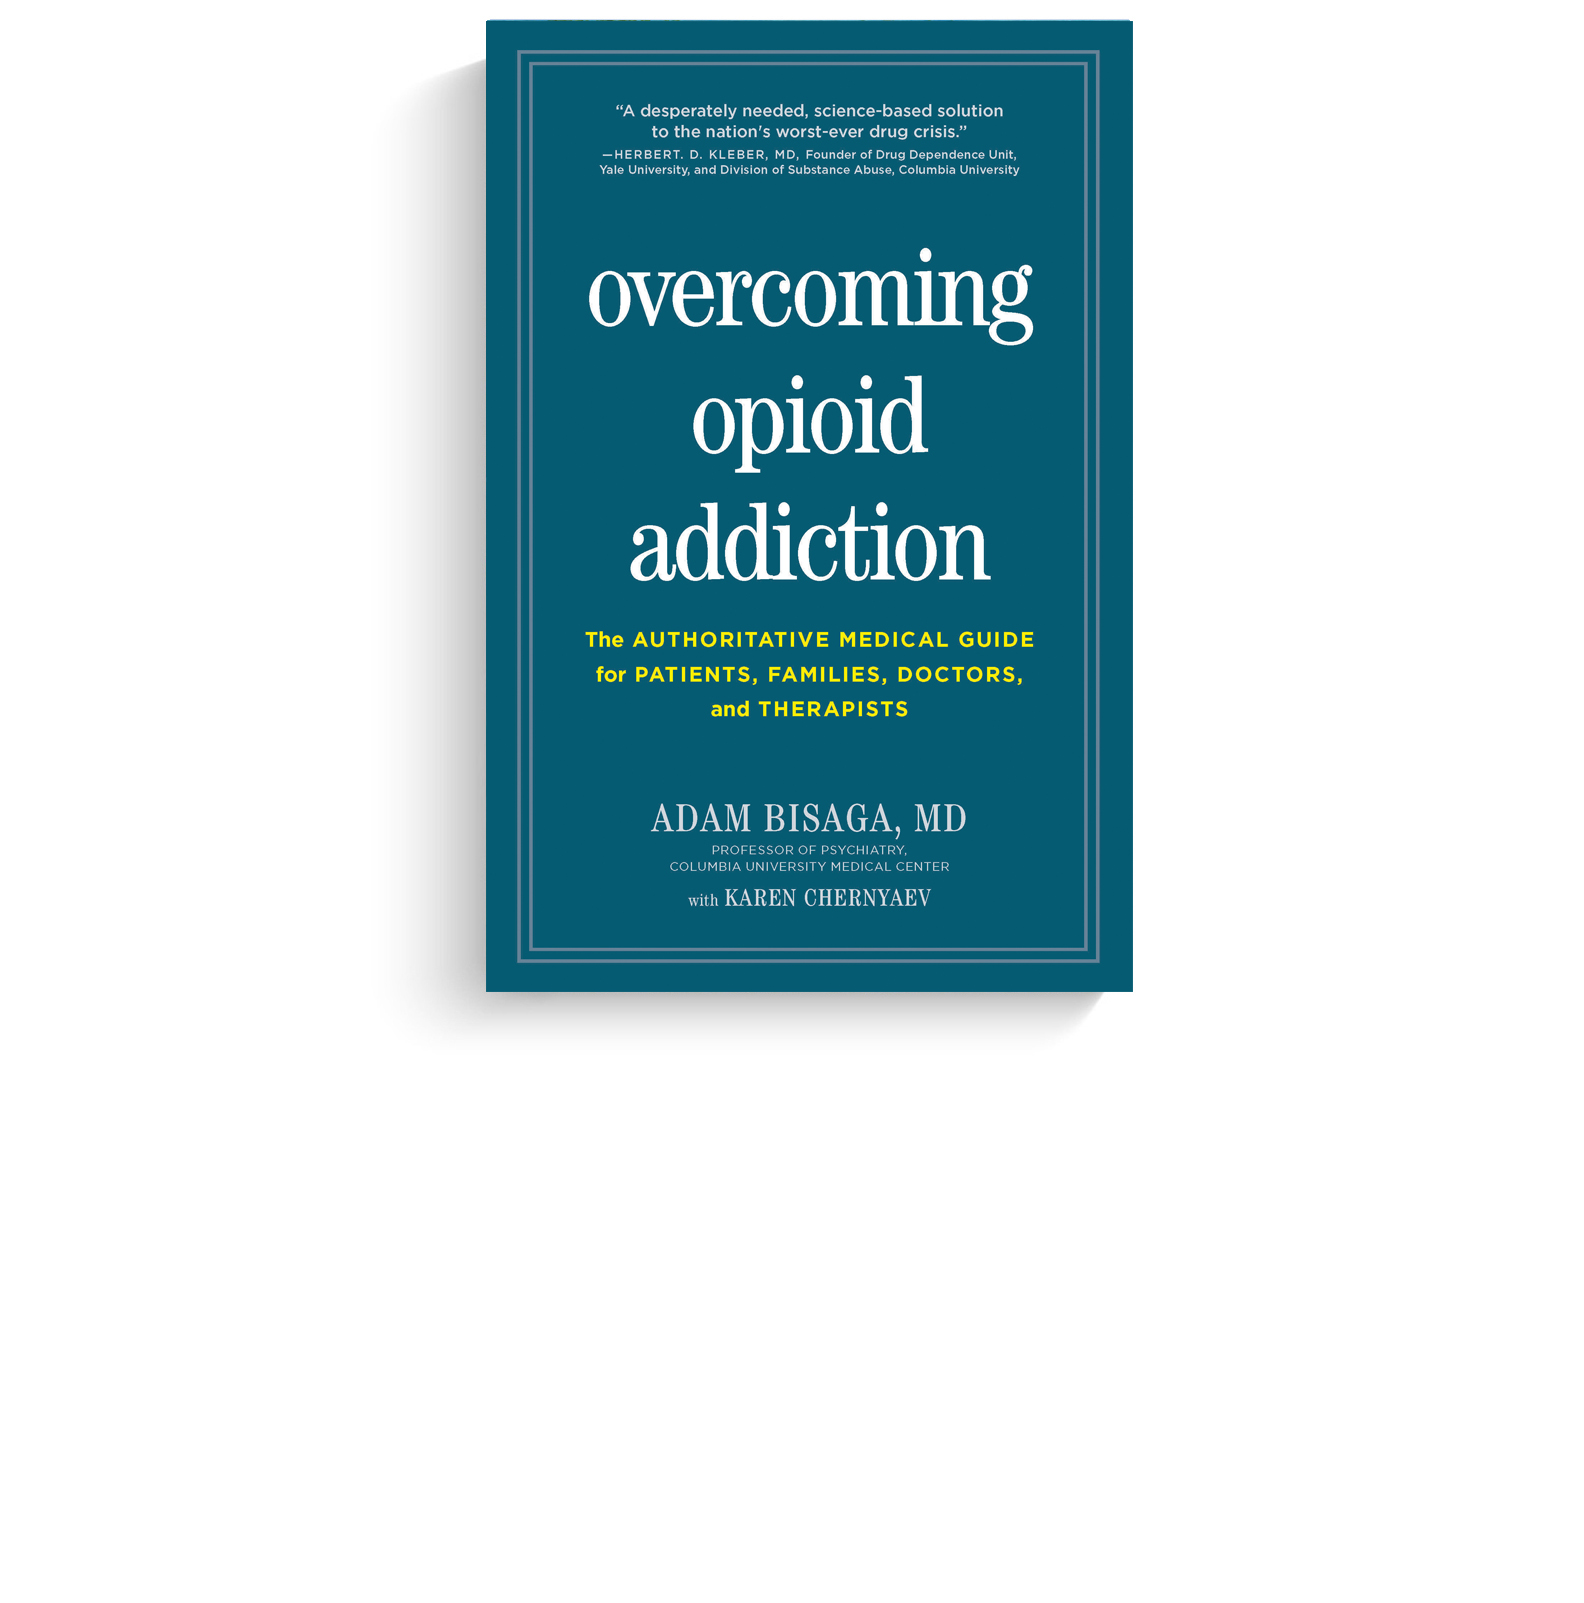 overcoming opioid addiction.jpg